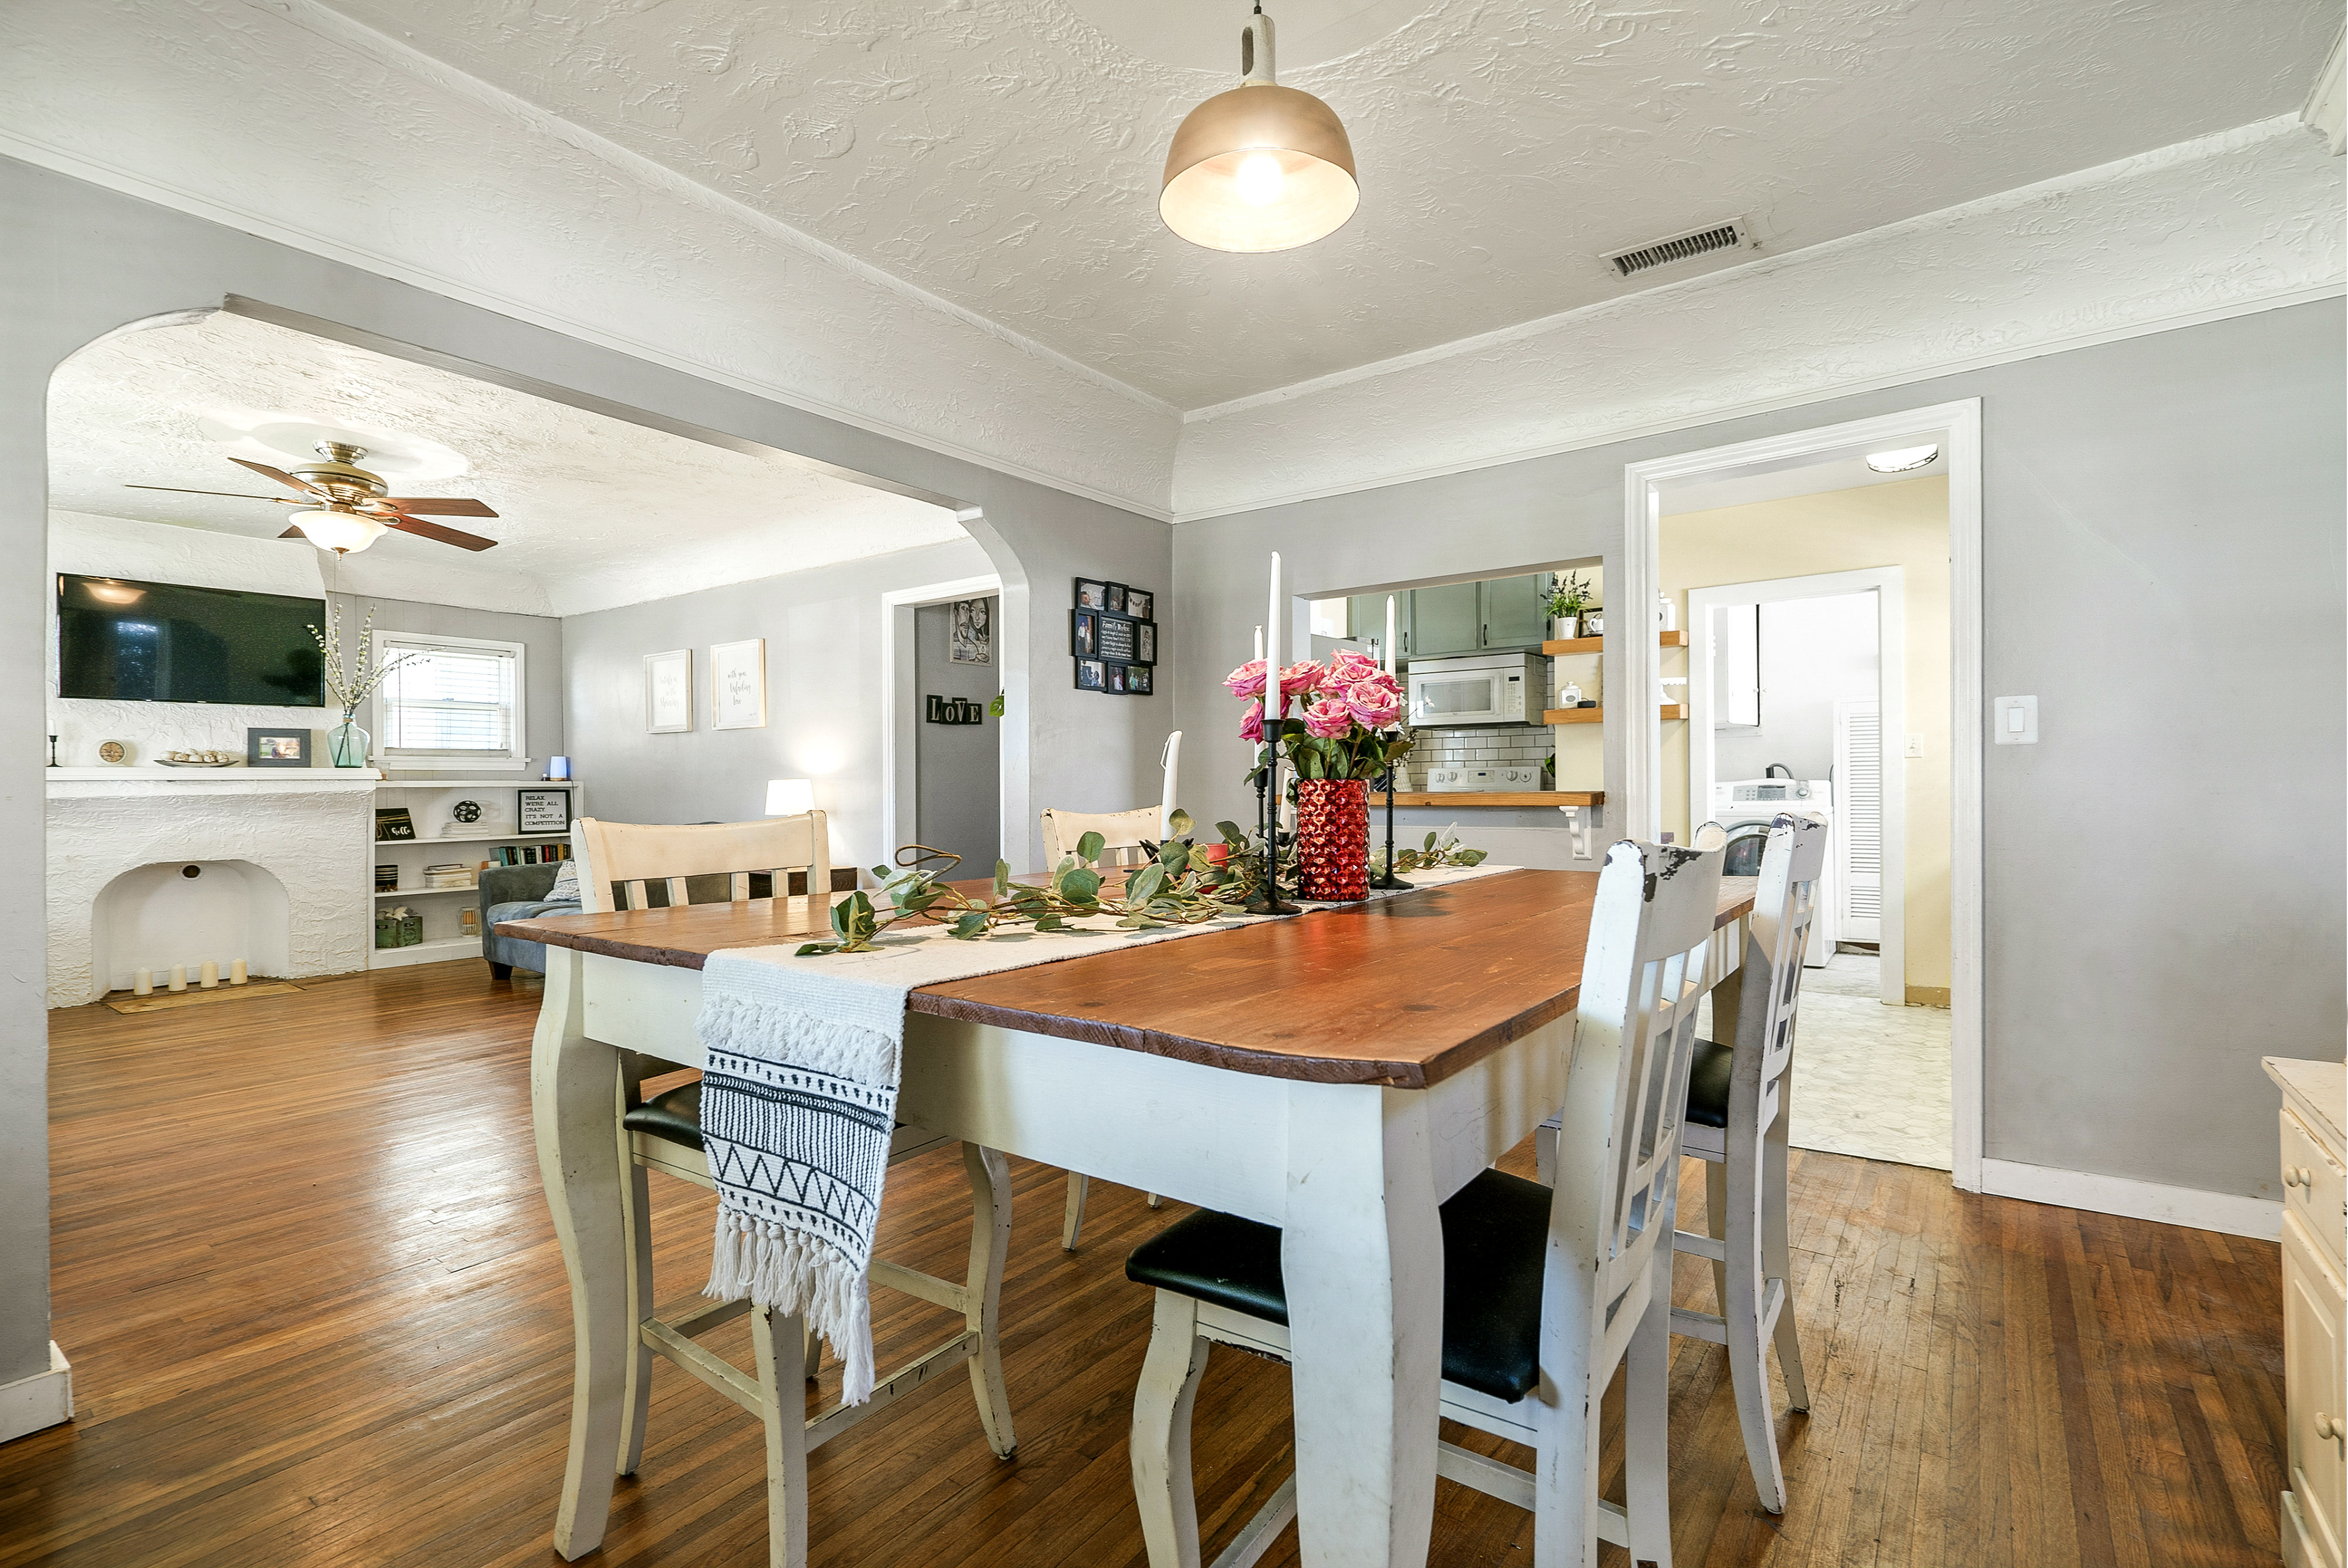 Spacious formal dining room overlooking the living room and kitchen.